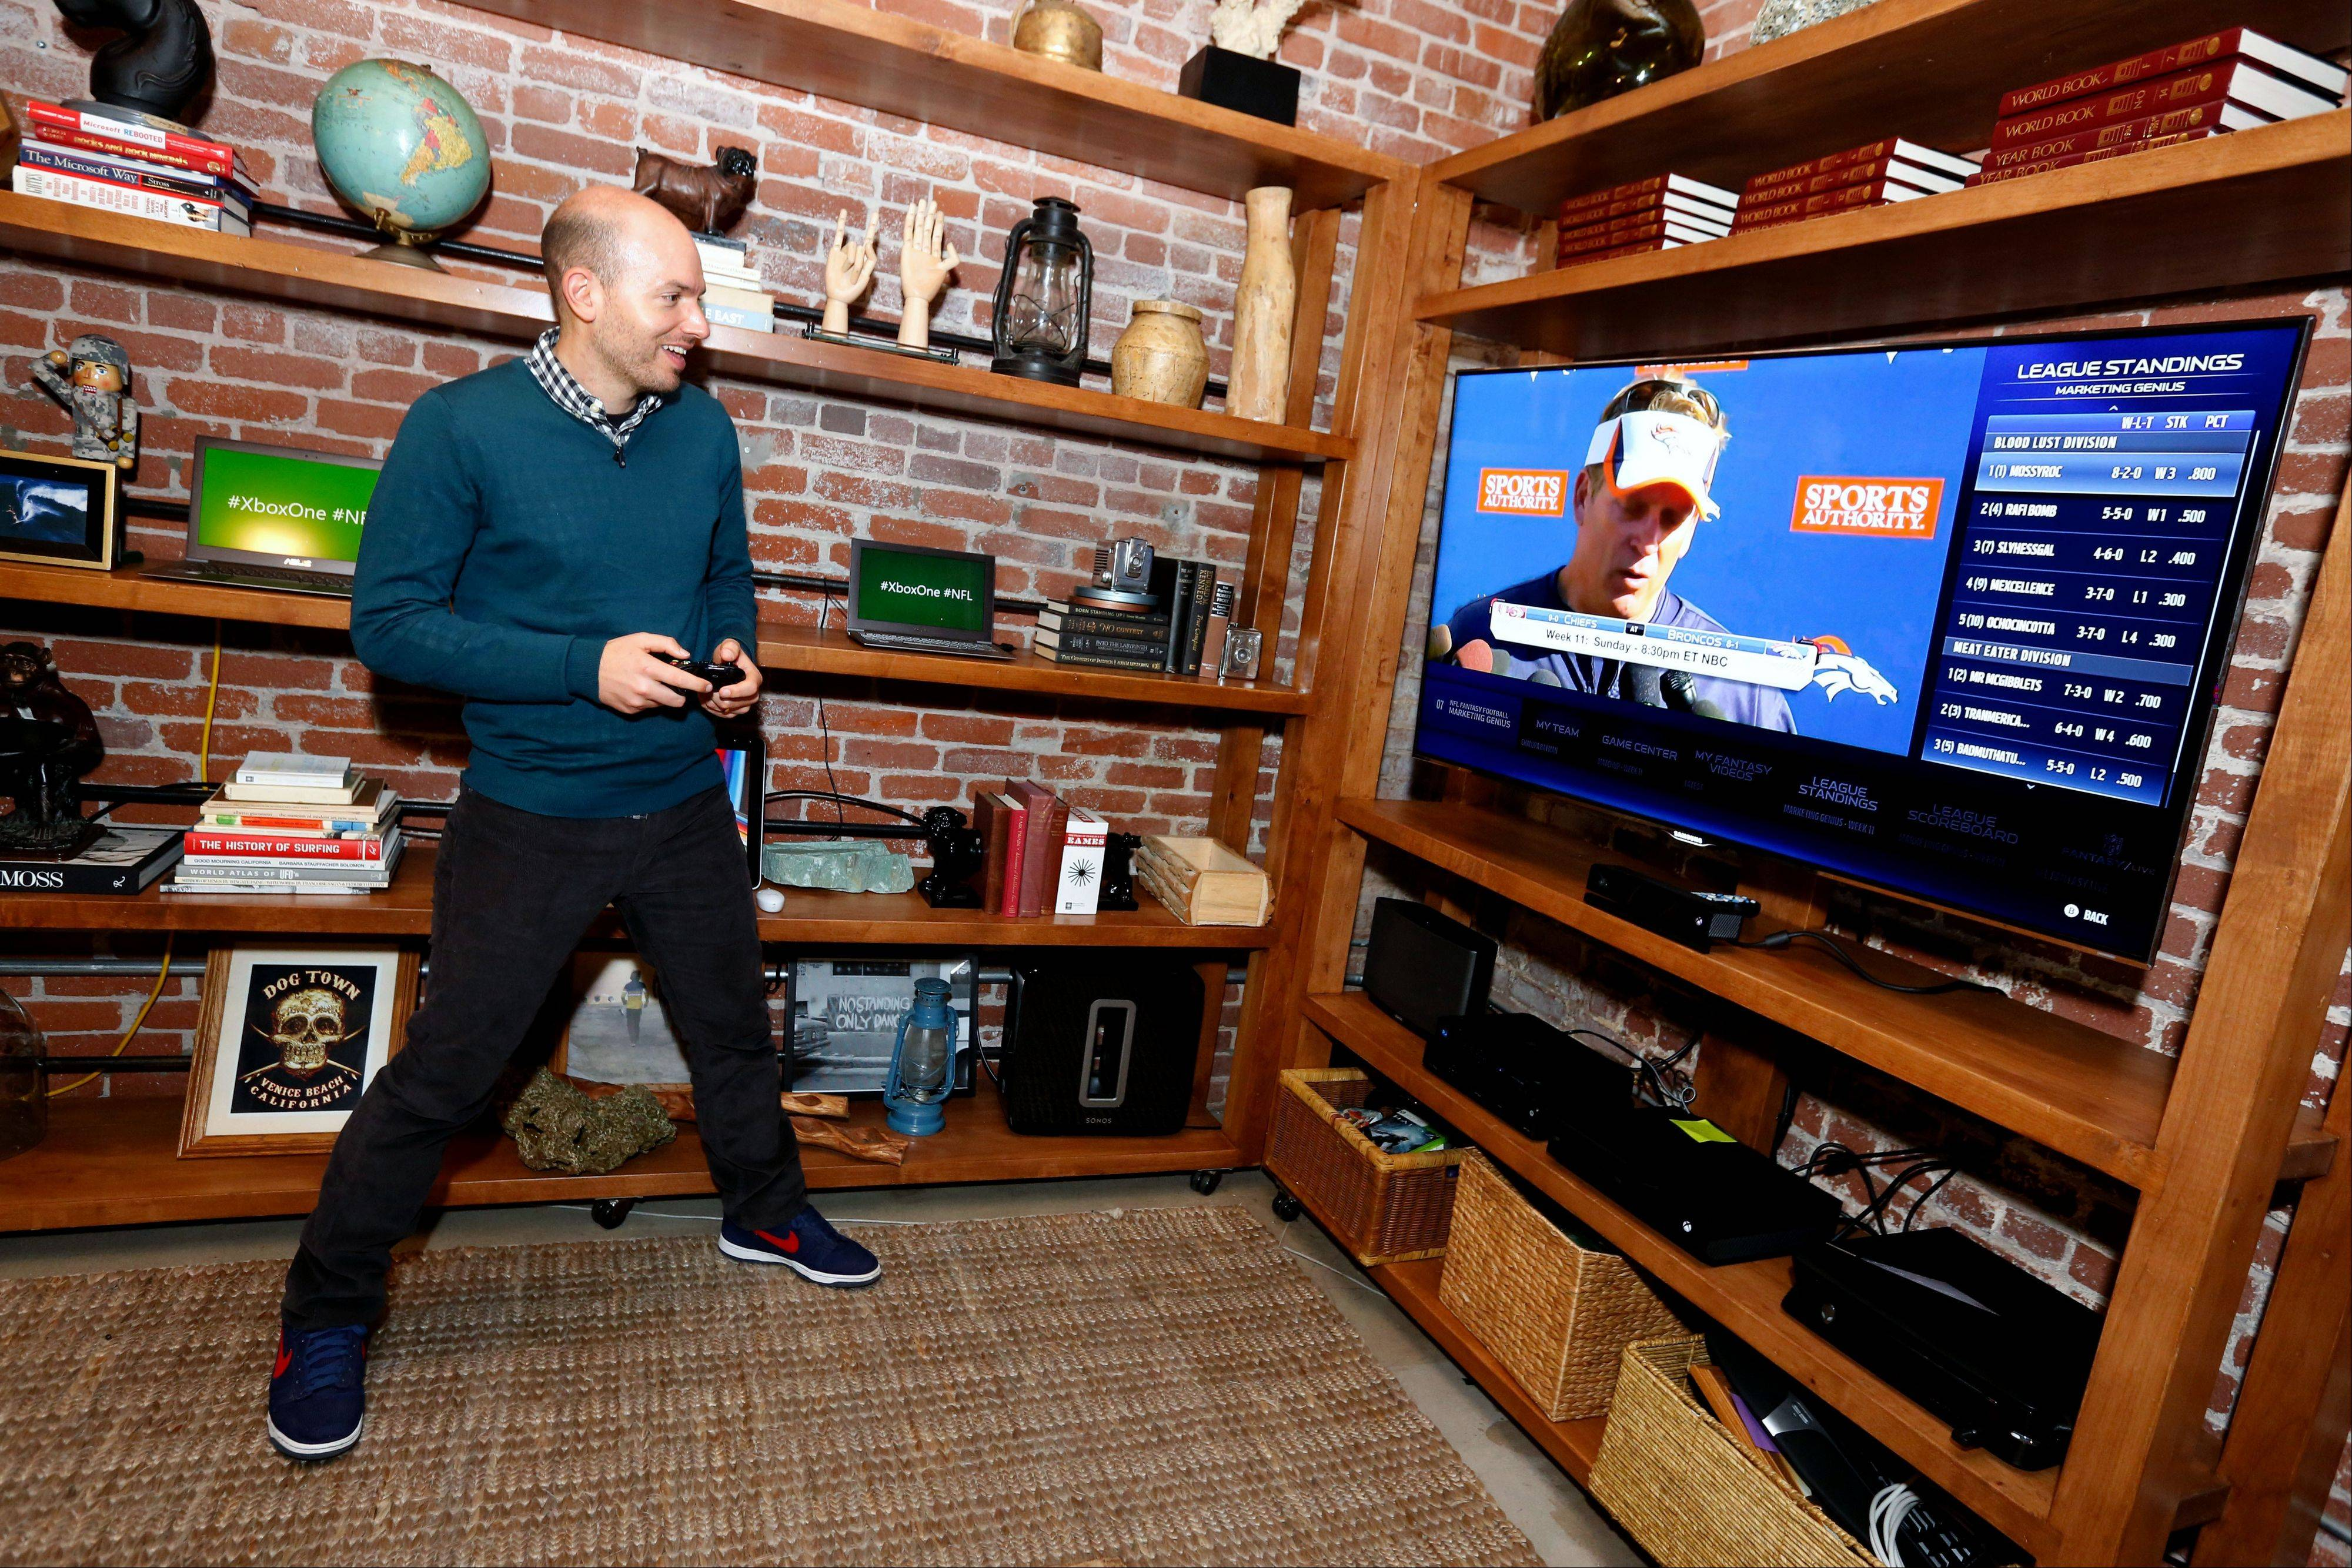 Paul Scheer of The League uses The NFL on Xbox One to check his fantasy team.